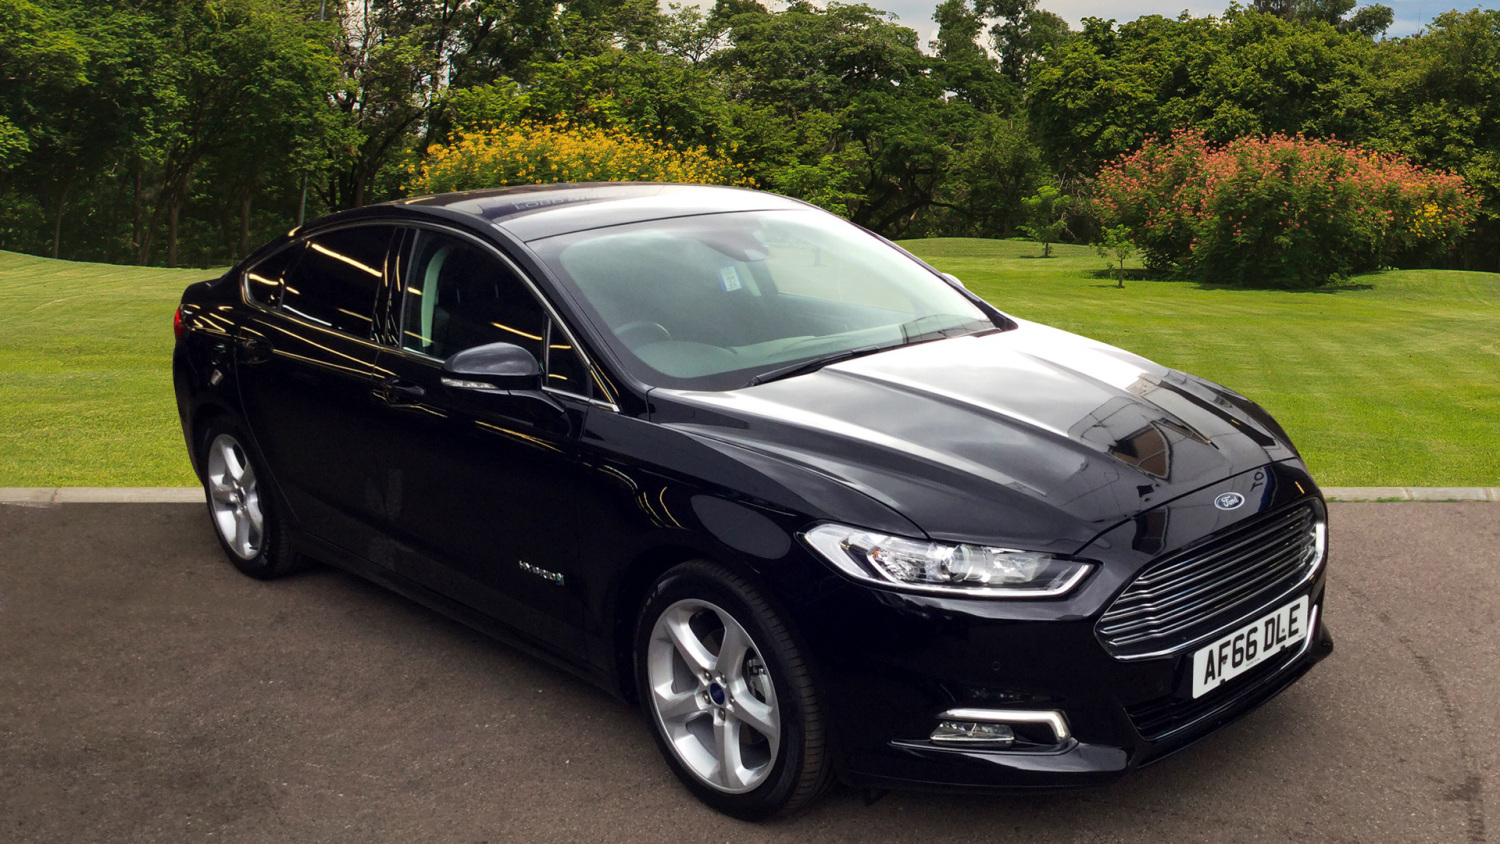 My Ford Touch Screen Is Black >> Used Ford Mondeo 2.0 Hybrid Titanium 4Dr Auto Hybrid Saloon for Sale | Bristol Street Motors